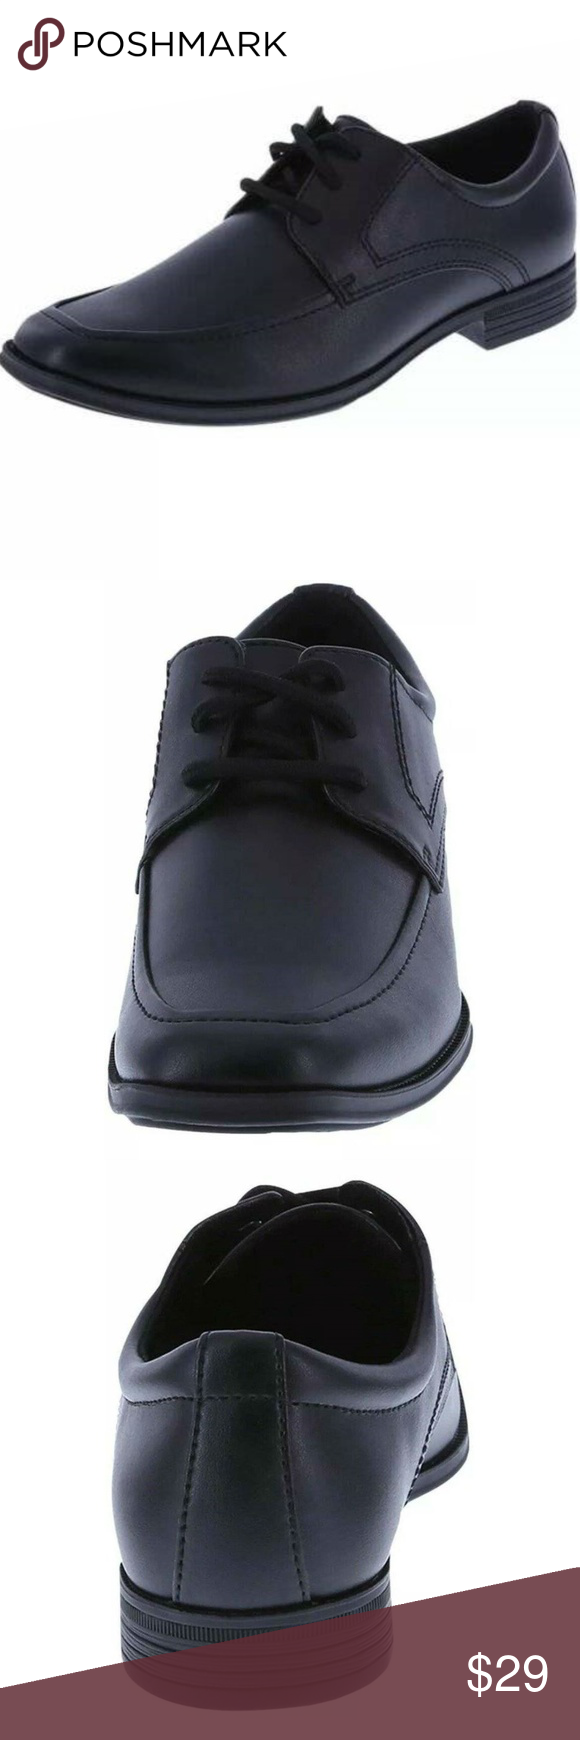 Boys Smartfit Black Habille Dress Moc Shoes Size 6 Reasonable Offers Accepted Boys Shoes Condition New With Tags Made By Sma Shoe Features Boys Shoes Shoes [ 1740 x 580 Pixel ]